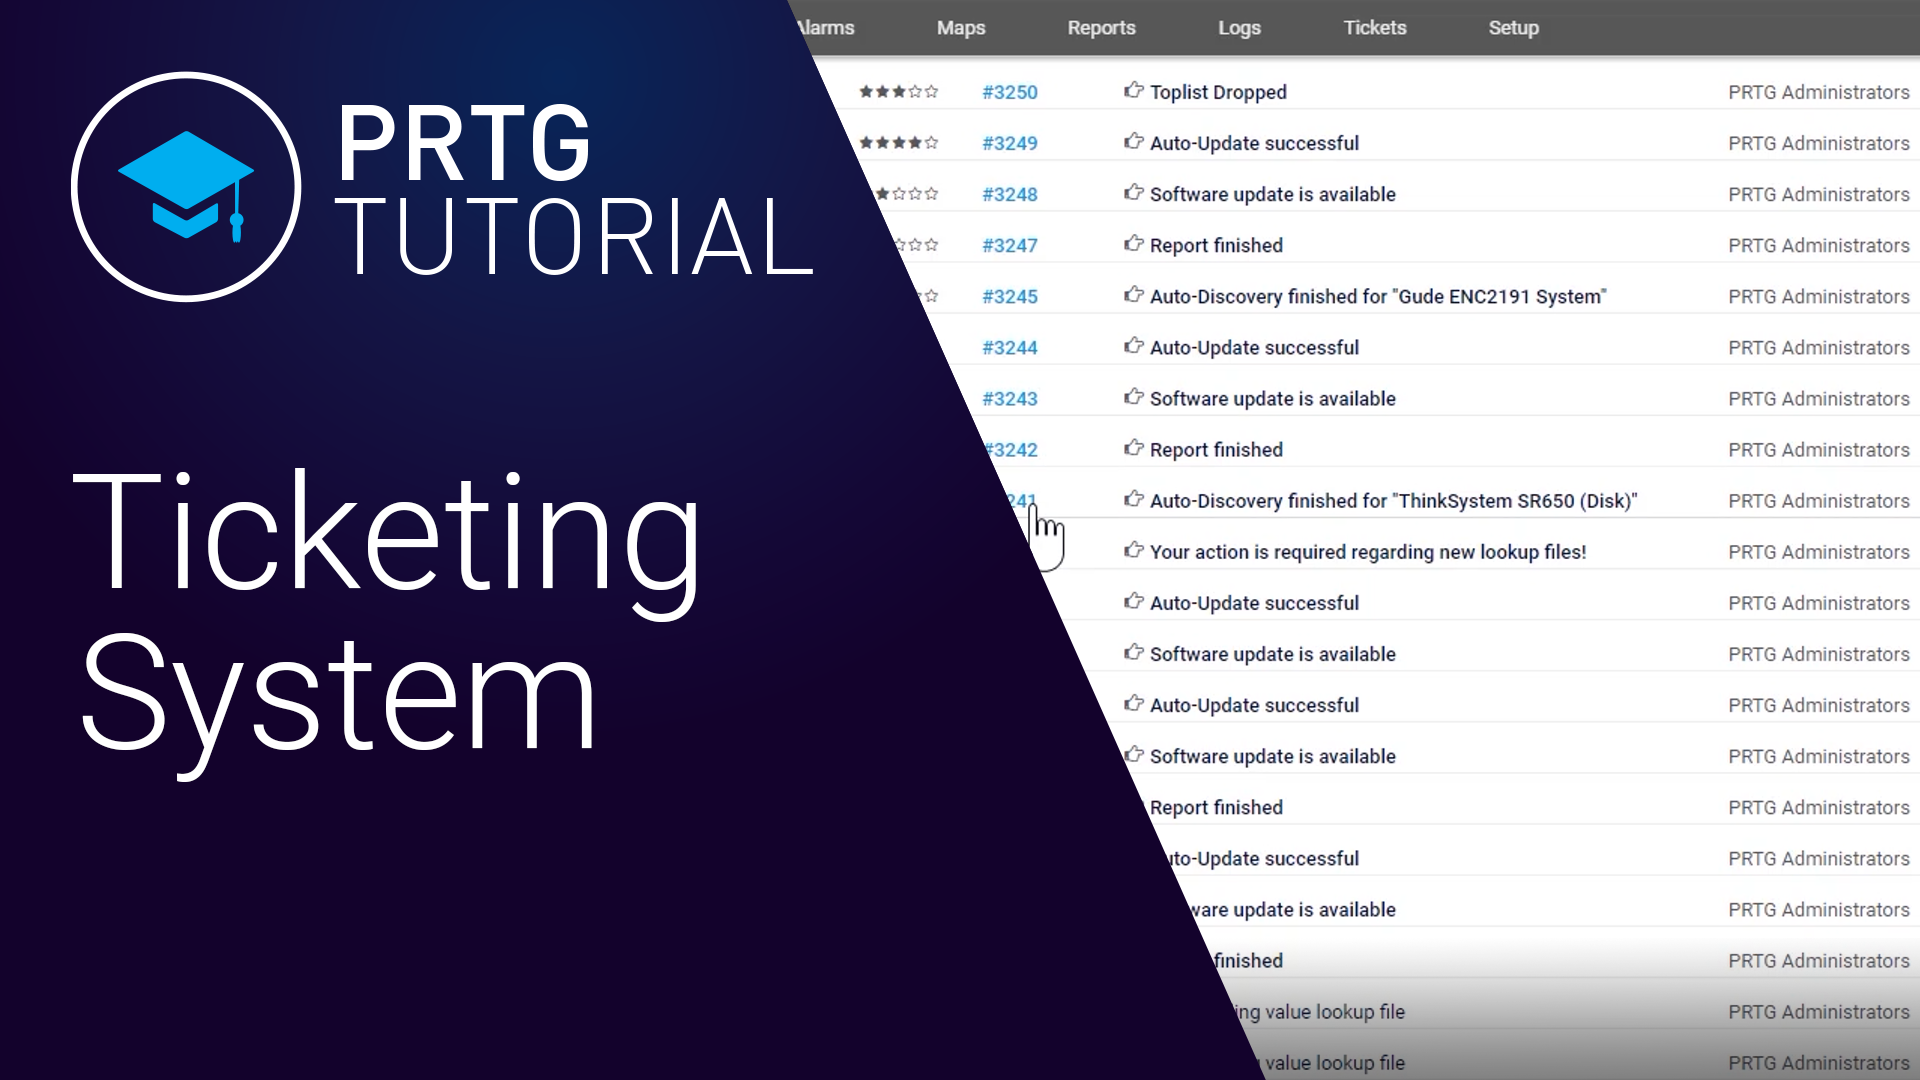 Video: PRTG Network Monitor - Ticketsystem (Videos, Tickets)